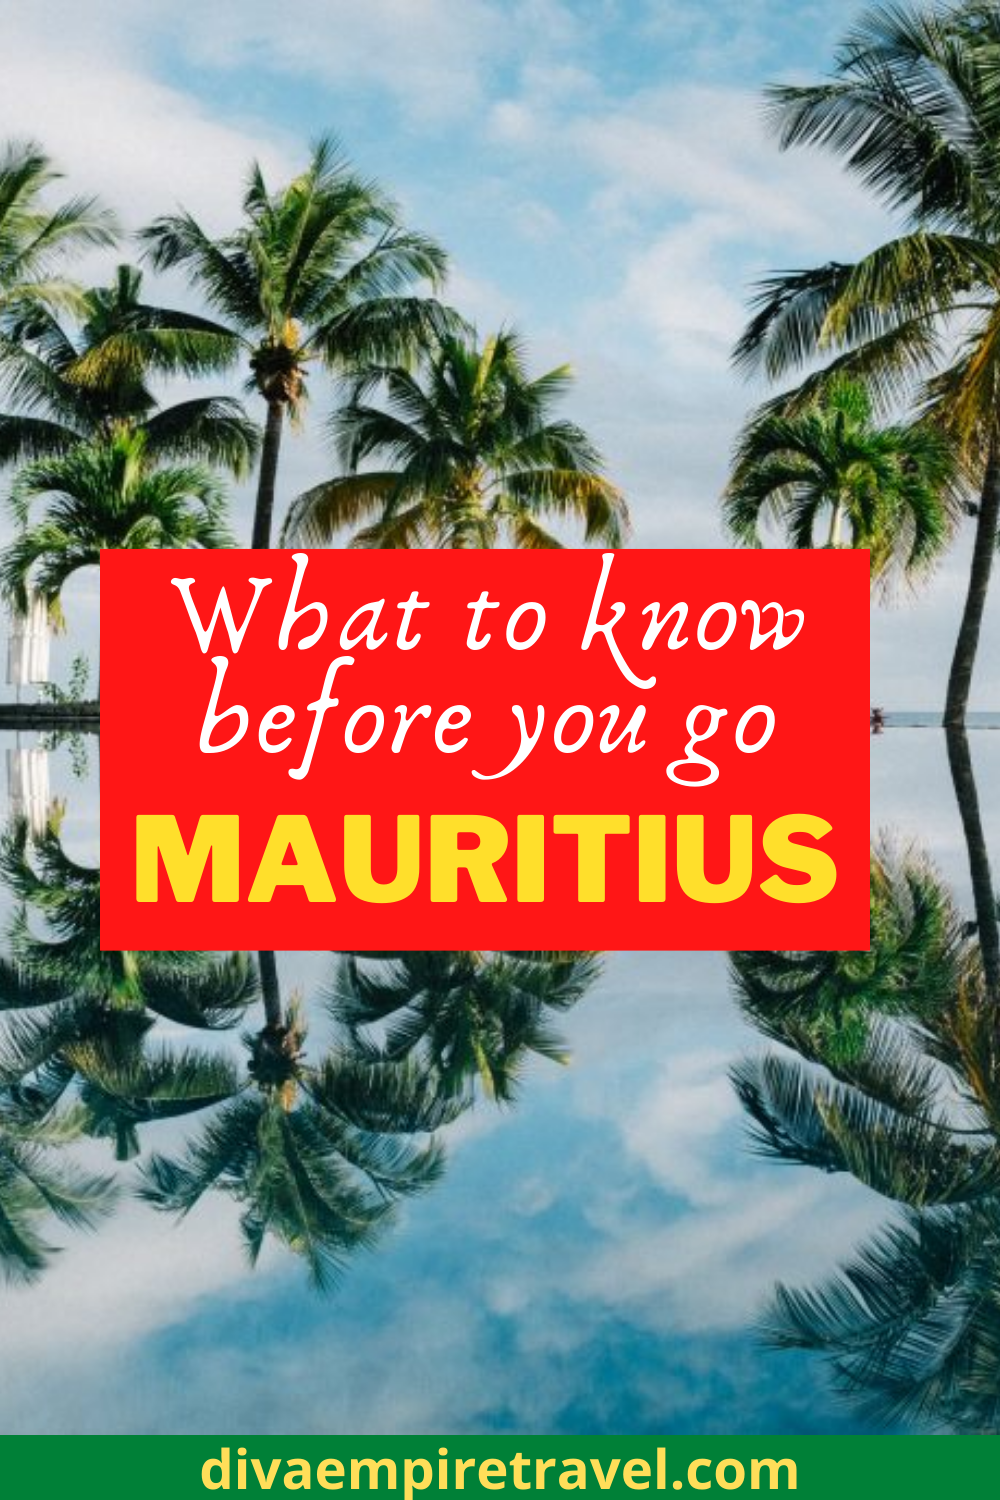 Mauritius ,Indian Ocean. Luxury resorts along the beaches, lagoons and reefs. The interior is mountainous and amazing hikes within the Black River Gorges National Park. #bugununkaresi #outside #camp #travelgram #gezi #doga #sky #travelphotography